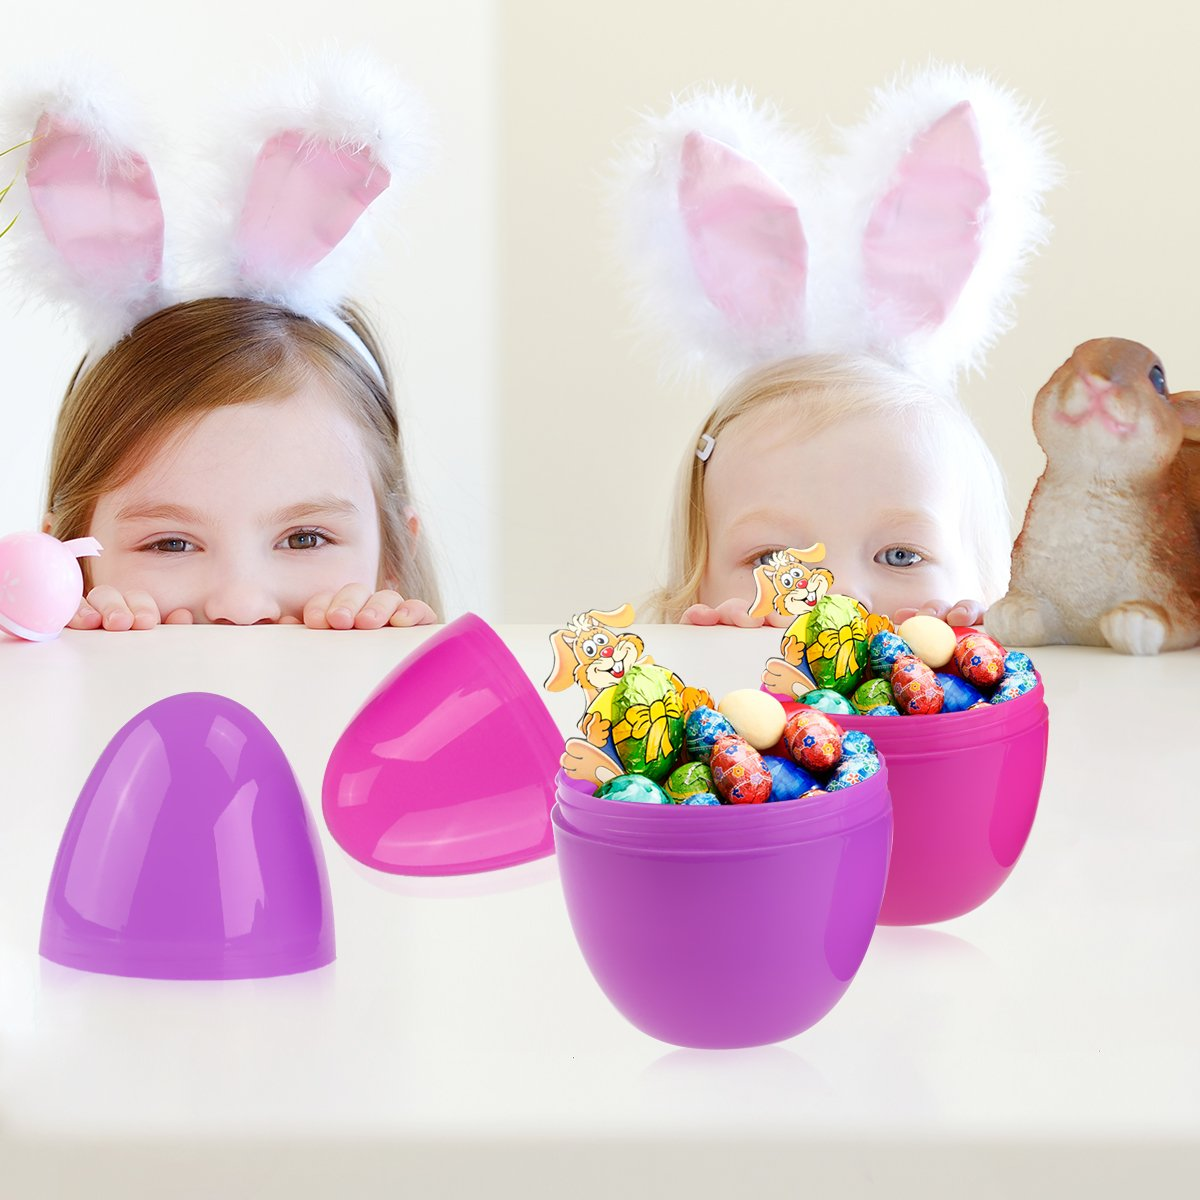 Unomor Jumbo Plastic Easter Egg Containers Pack of 12 Assorted Colors